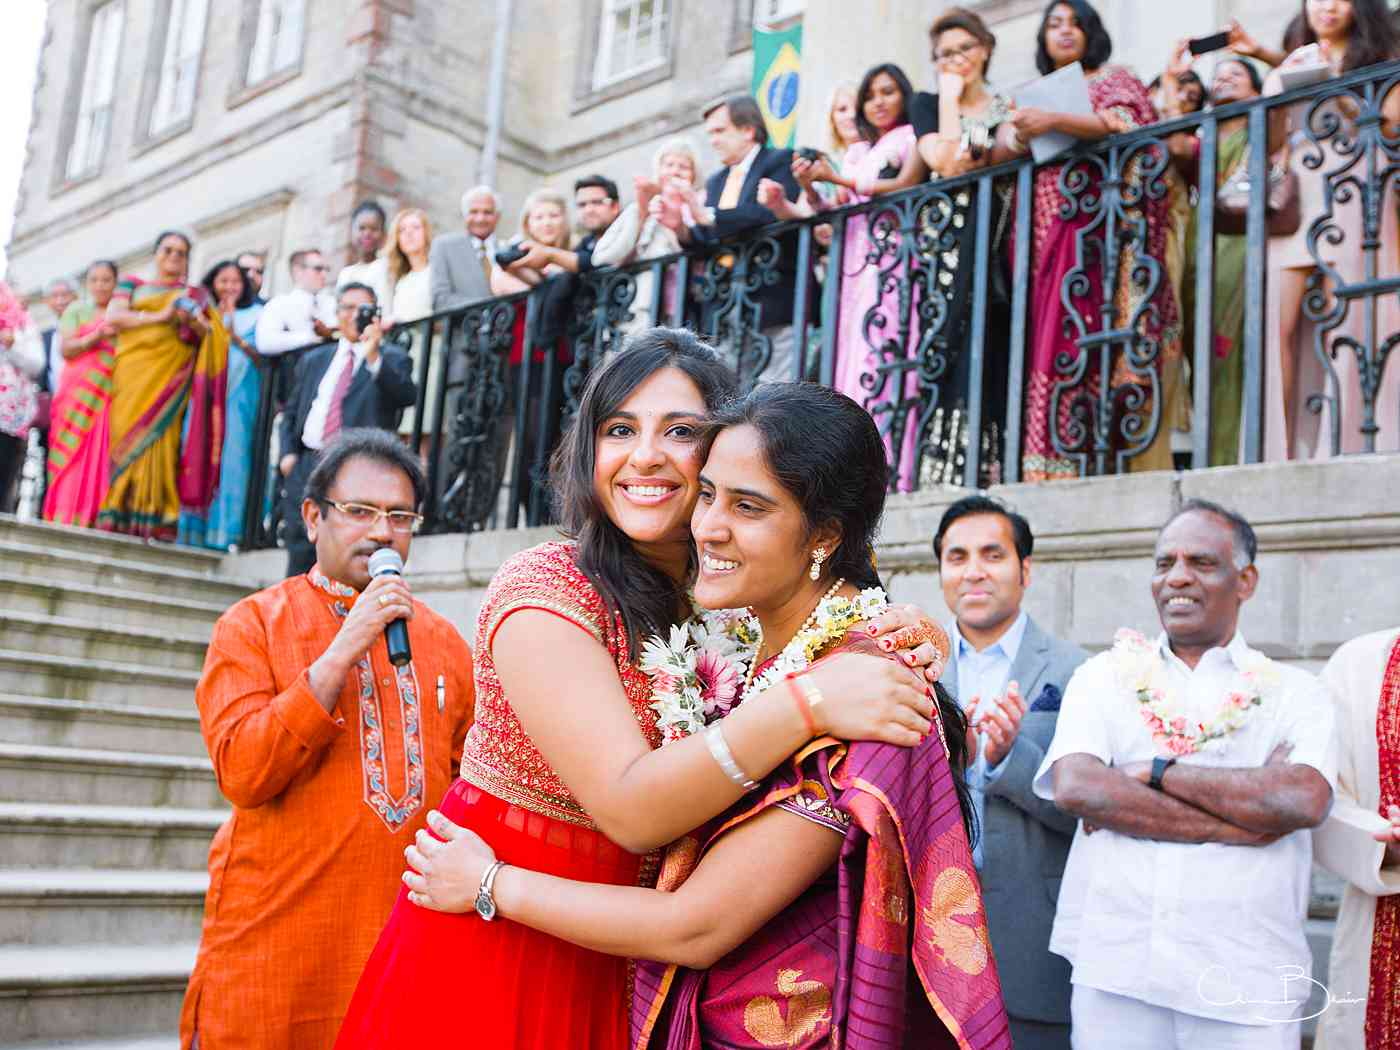 Indian women embracing at Ragley Hall